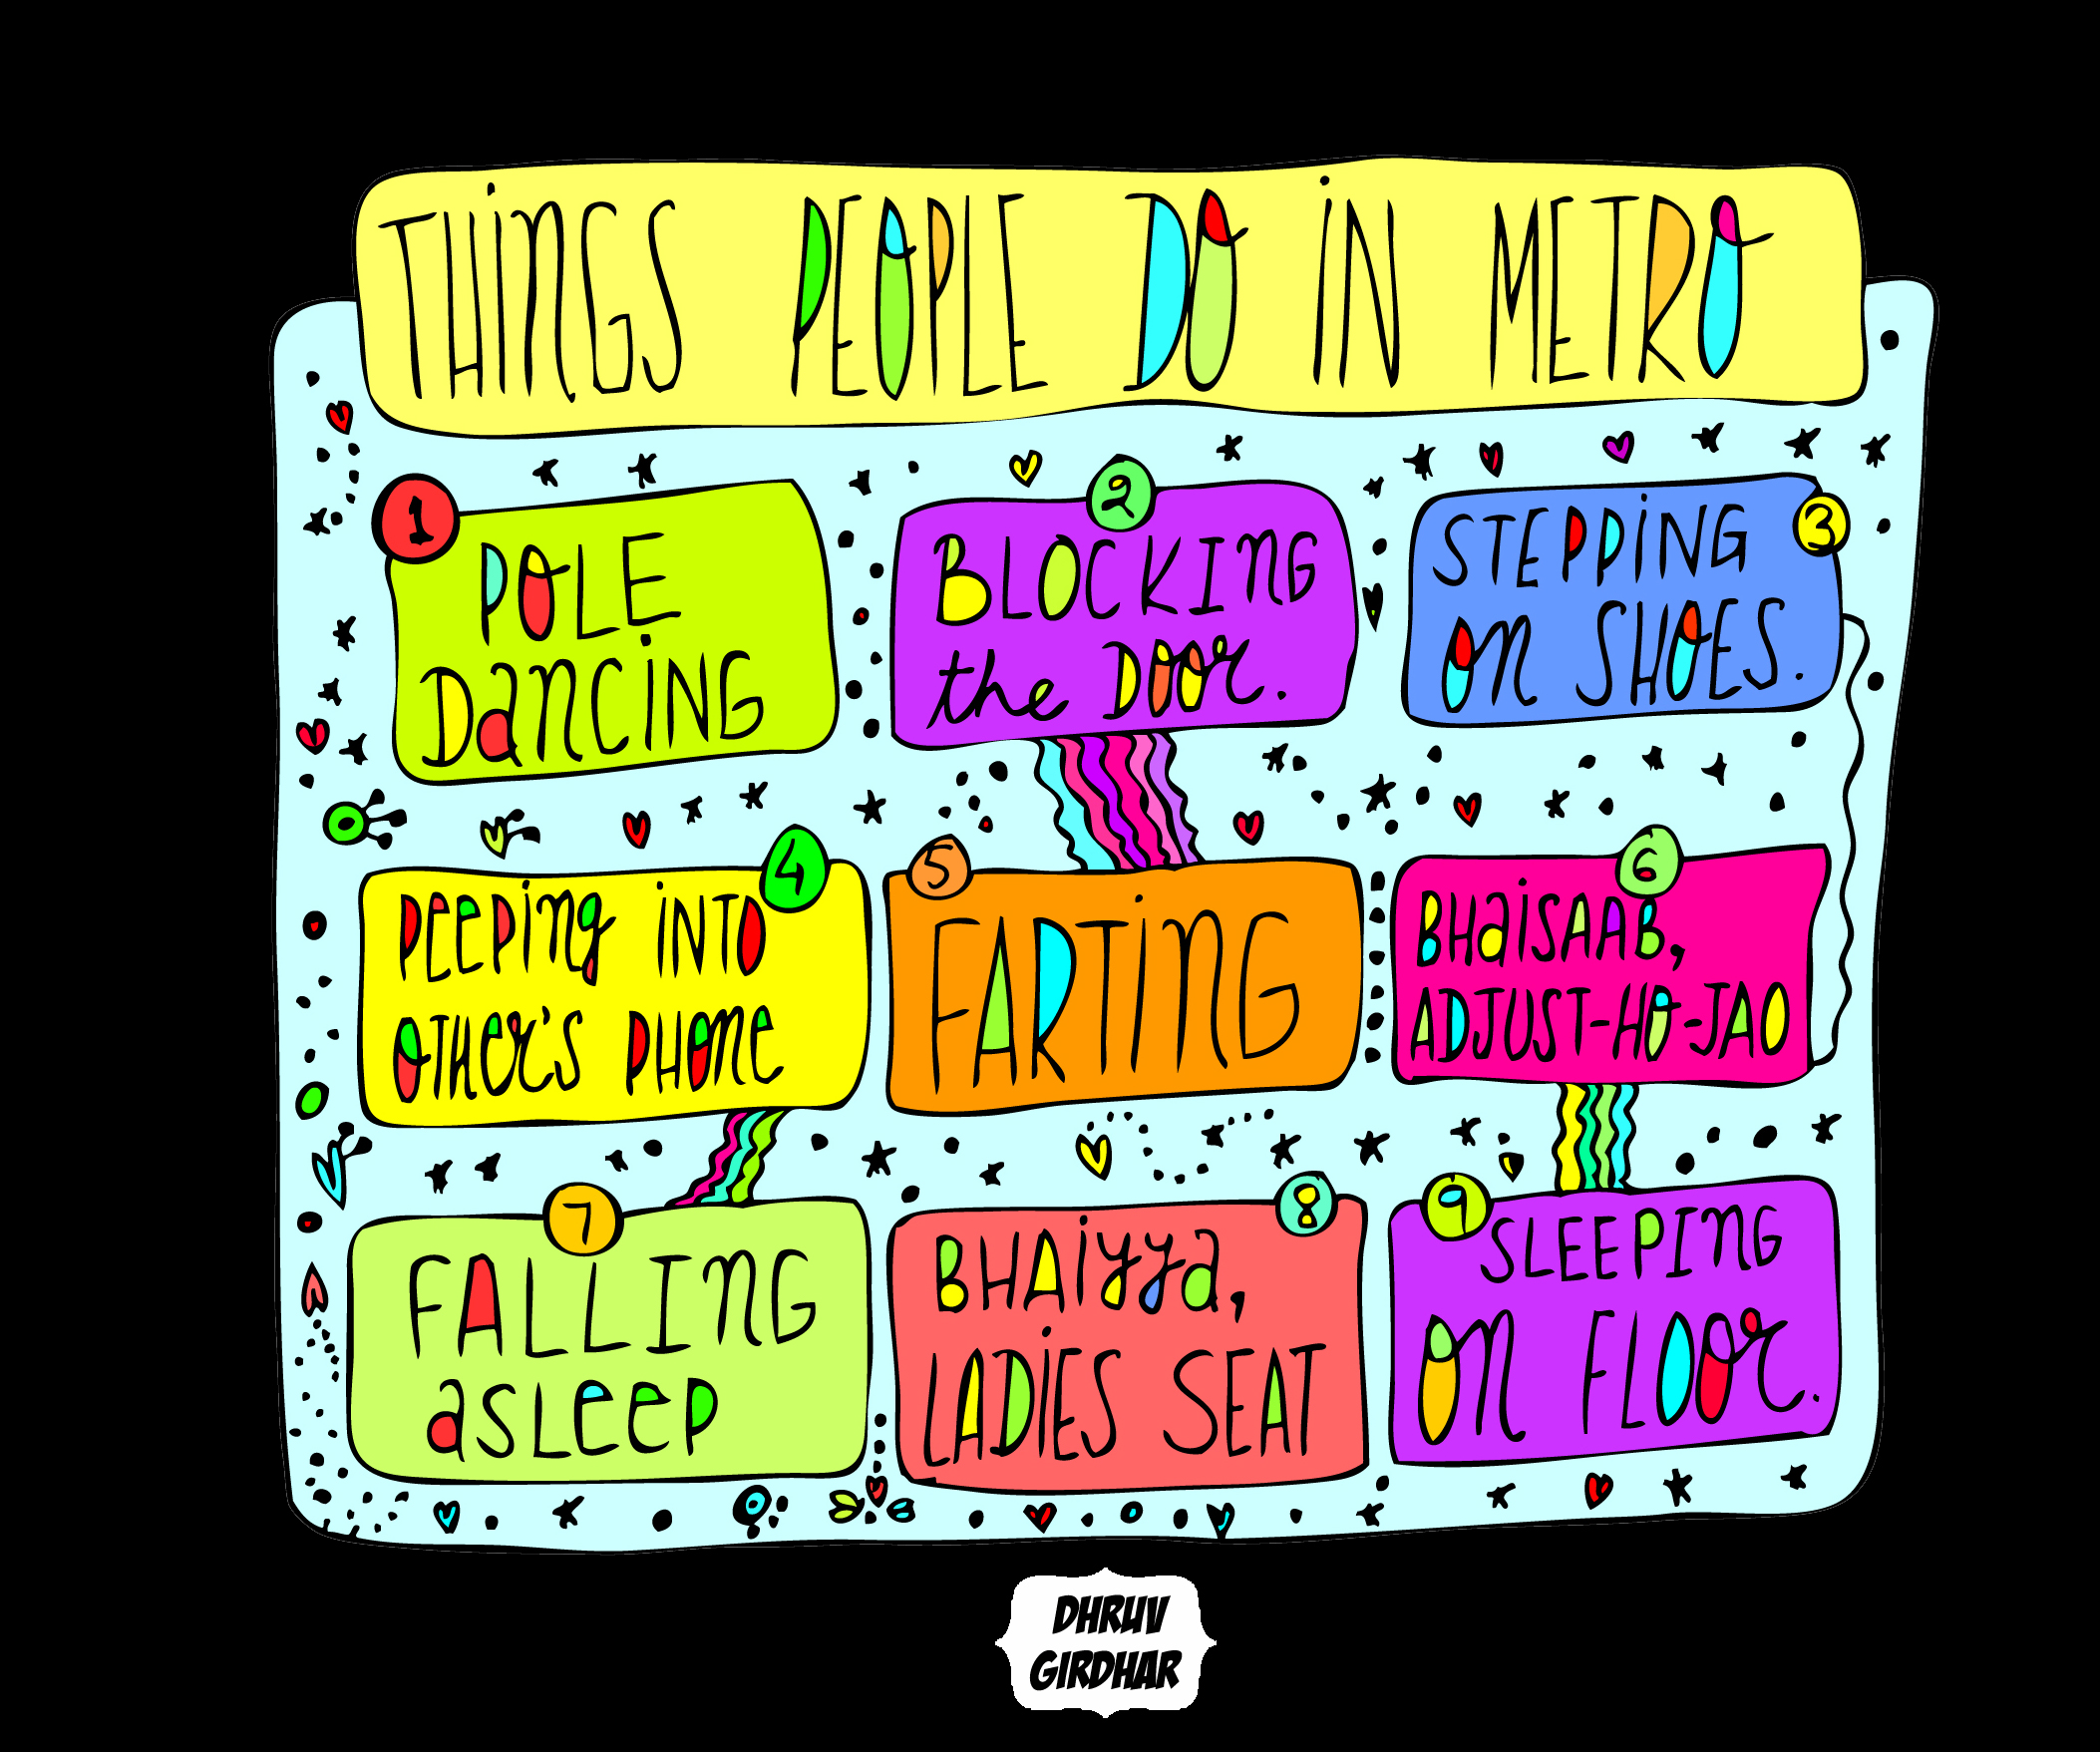 Annoying Things People Do In Delhi Metro